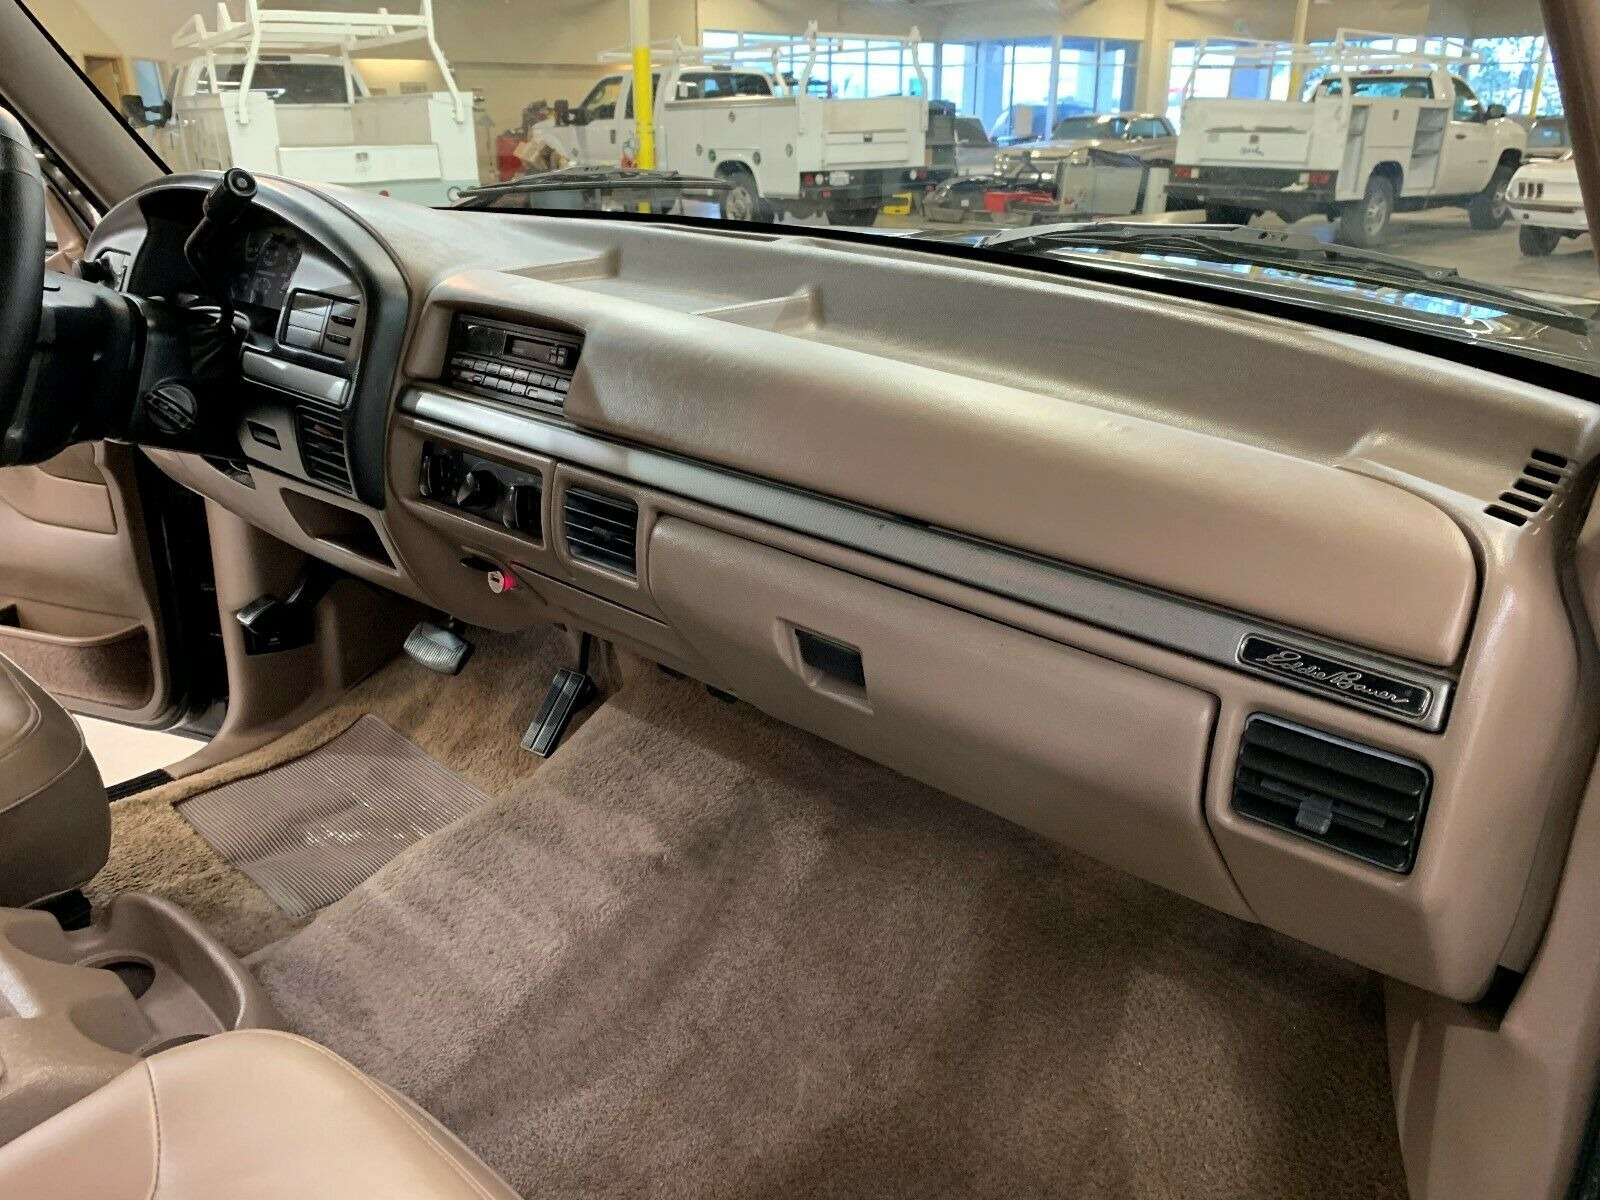 Used 1995 Ford Bronco -EDDIE BAUER-4WD-CALIFORNIA SUV-SOLID AND READY- | Mundelein, IL